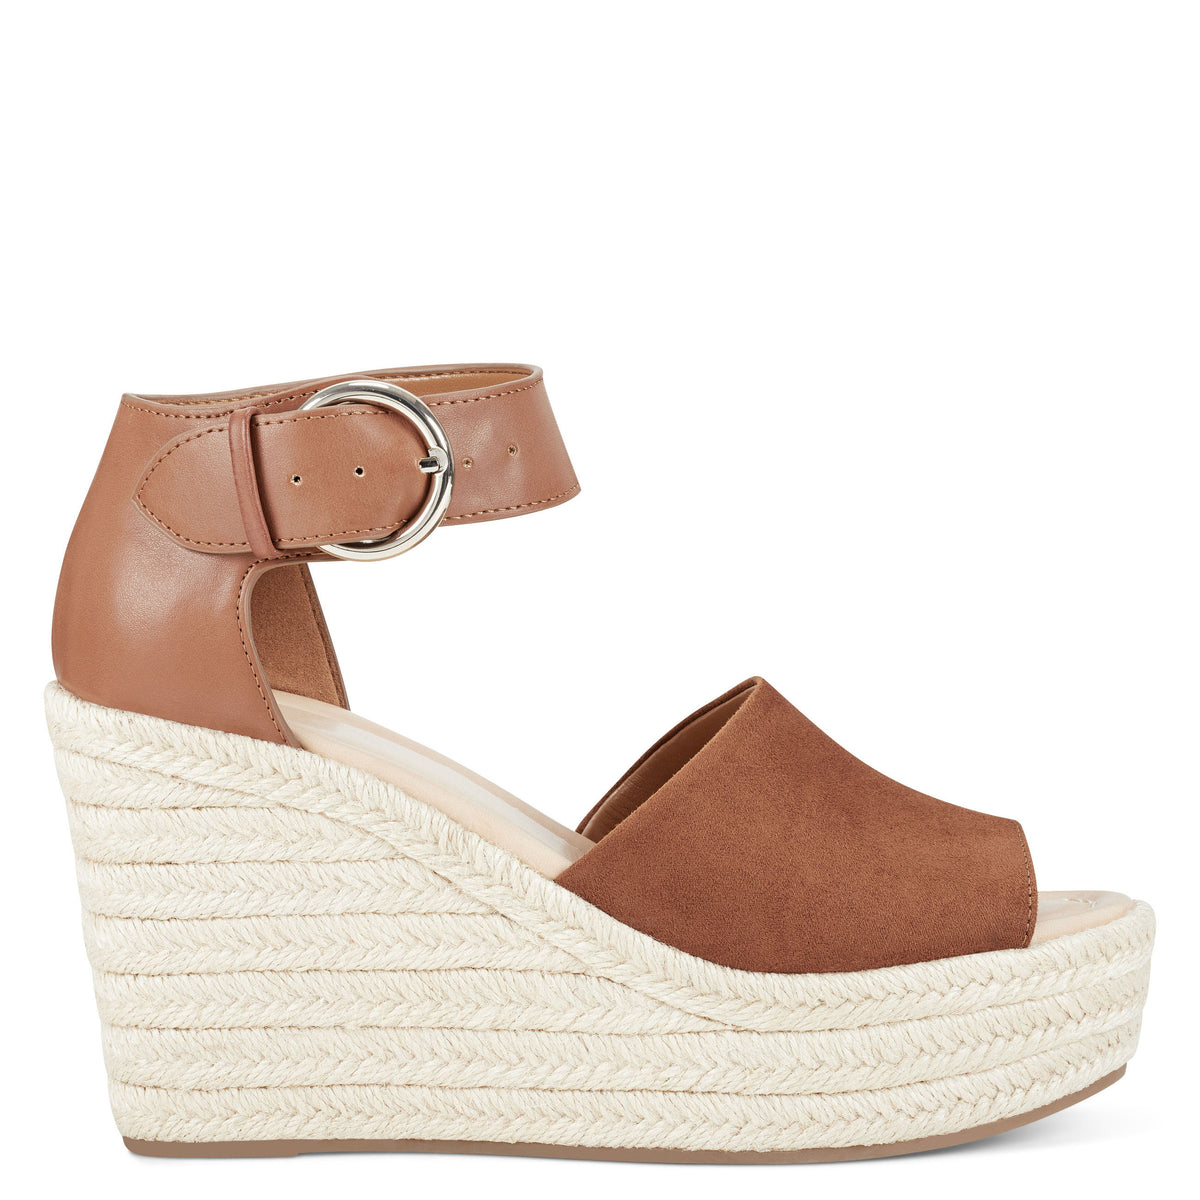 adell-espadrille-wedge-sandals-in-brown-multi